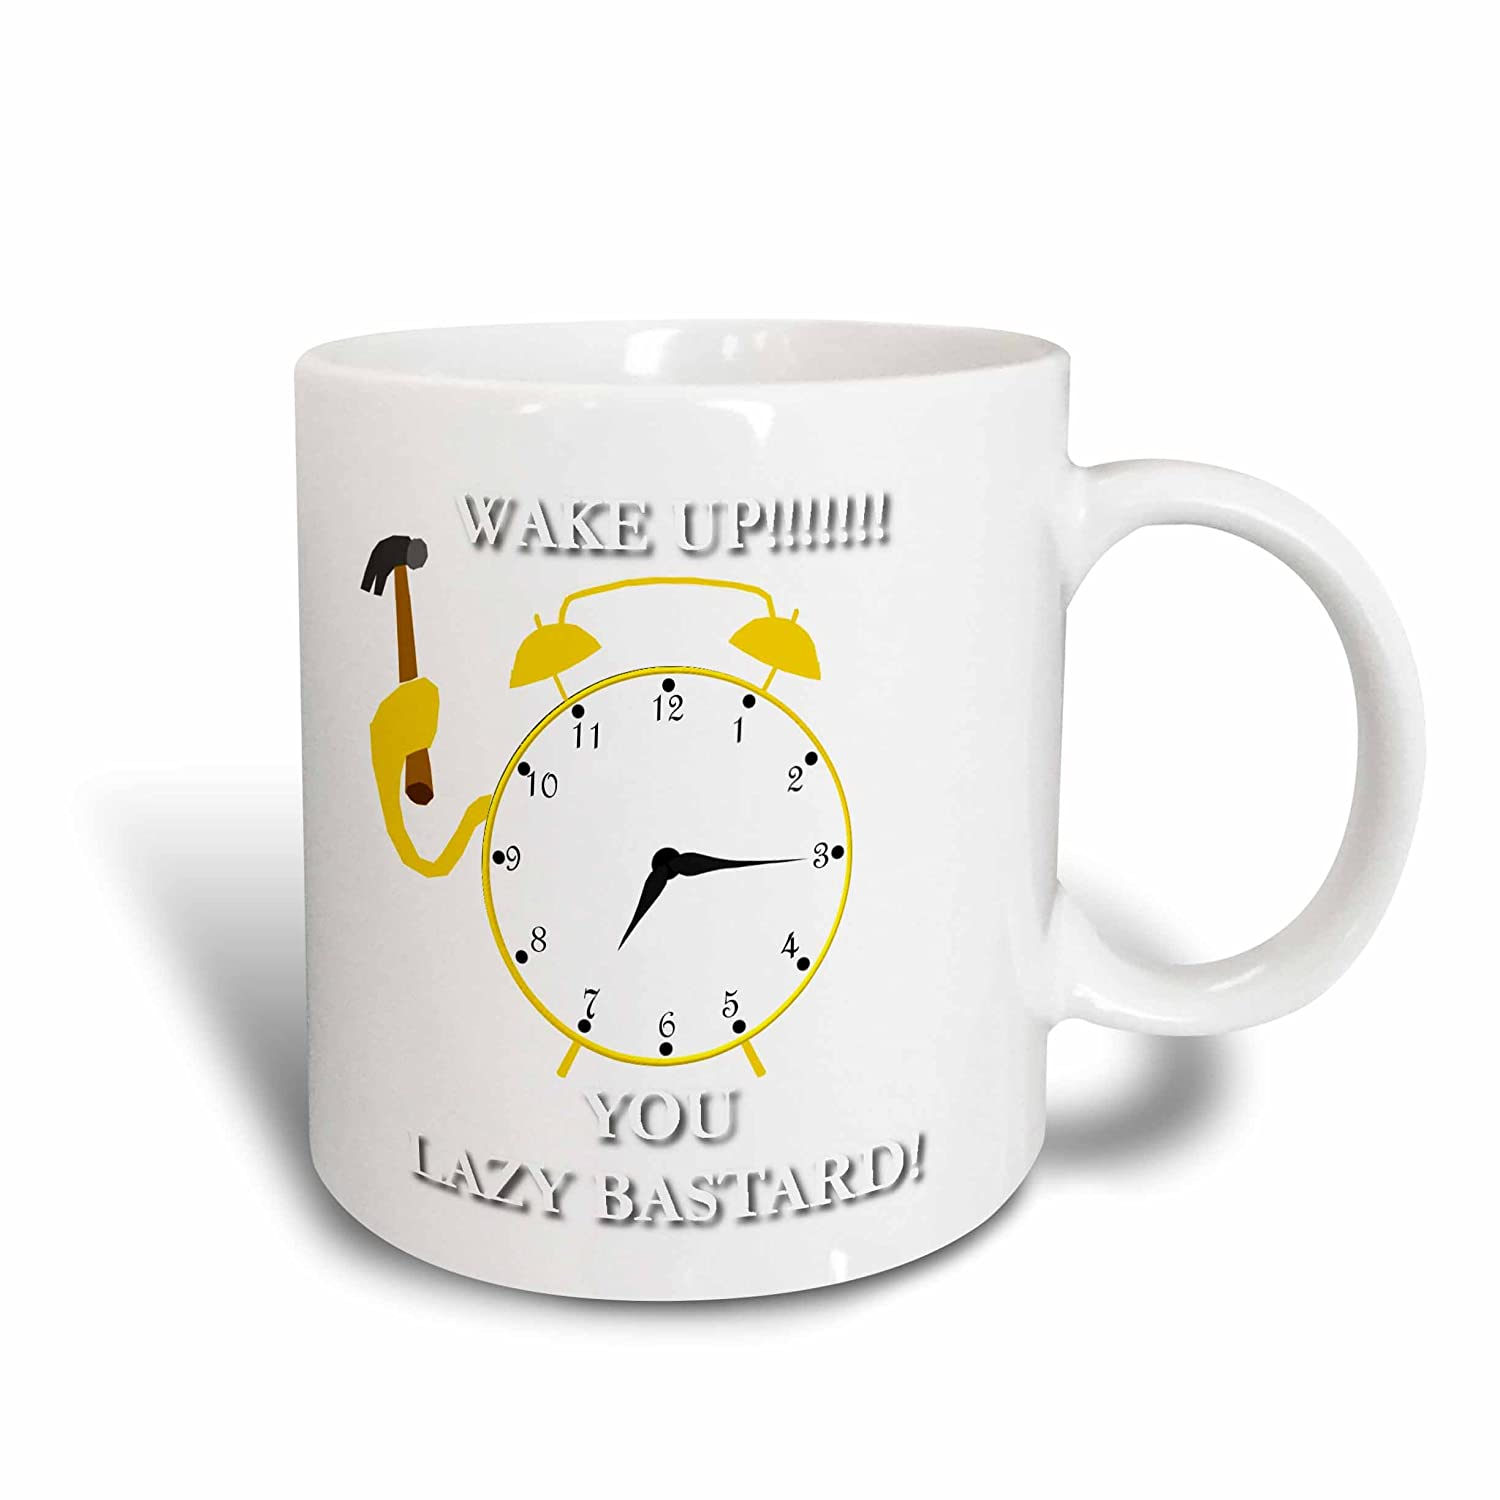 Buy 3drose Mug 36712 1 Alarm Clock Humor Ceramic Mug 11 Oz Multicolor Online At Low Prices In India Amazon In